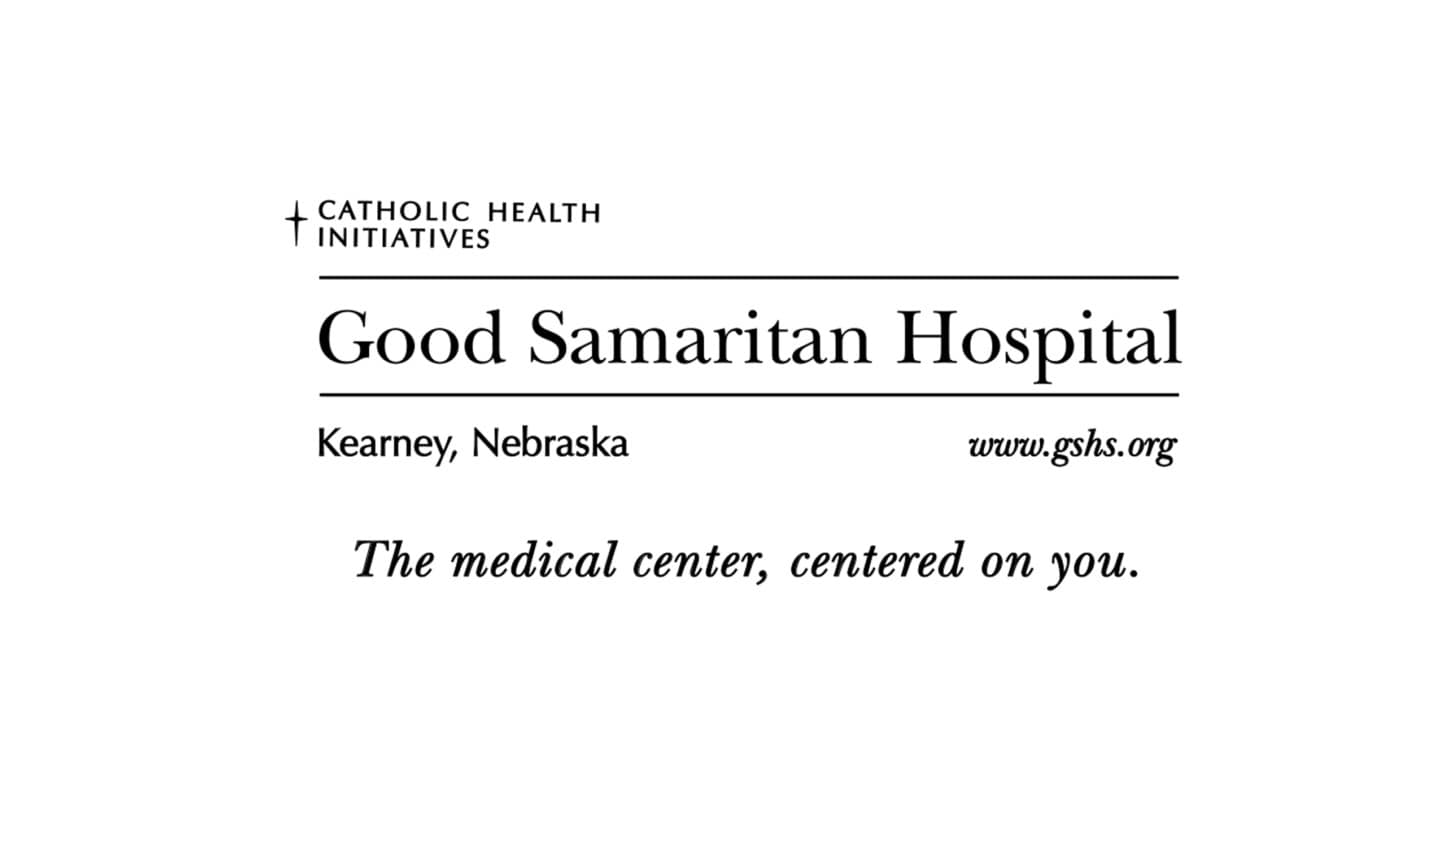 good samaritan hospital observations Hospital's expert generally opined that hospital satisfied the applicable standard of professional care by discharging the treating physician's medical recommendations for both patients, including that it performed observations of each of them at the physician's recommended 15-minute intervals, and concluded that one-on-one supervision.